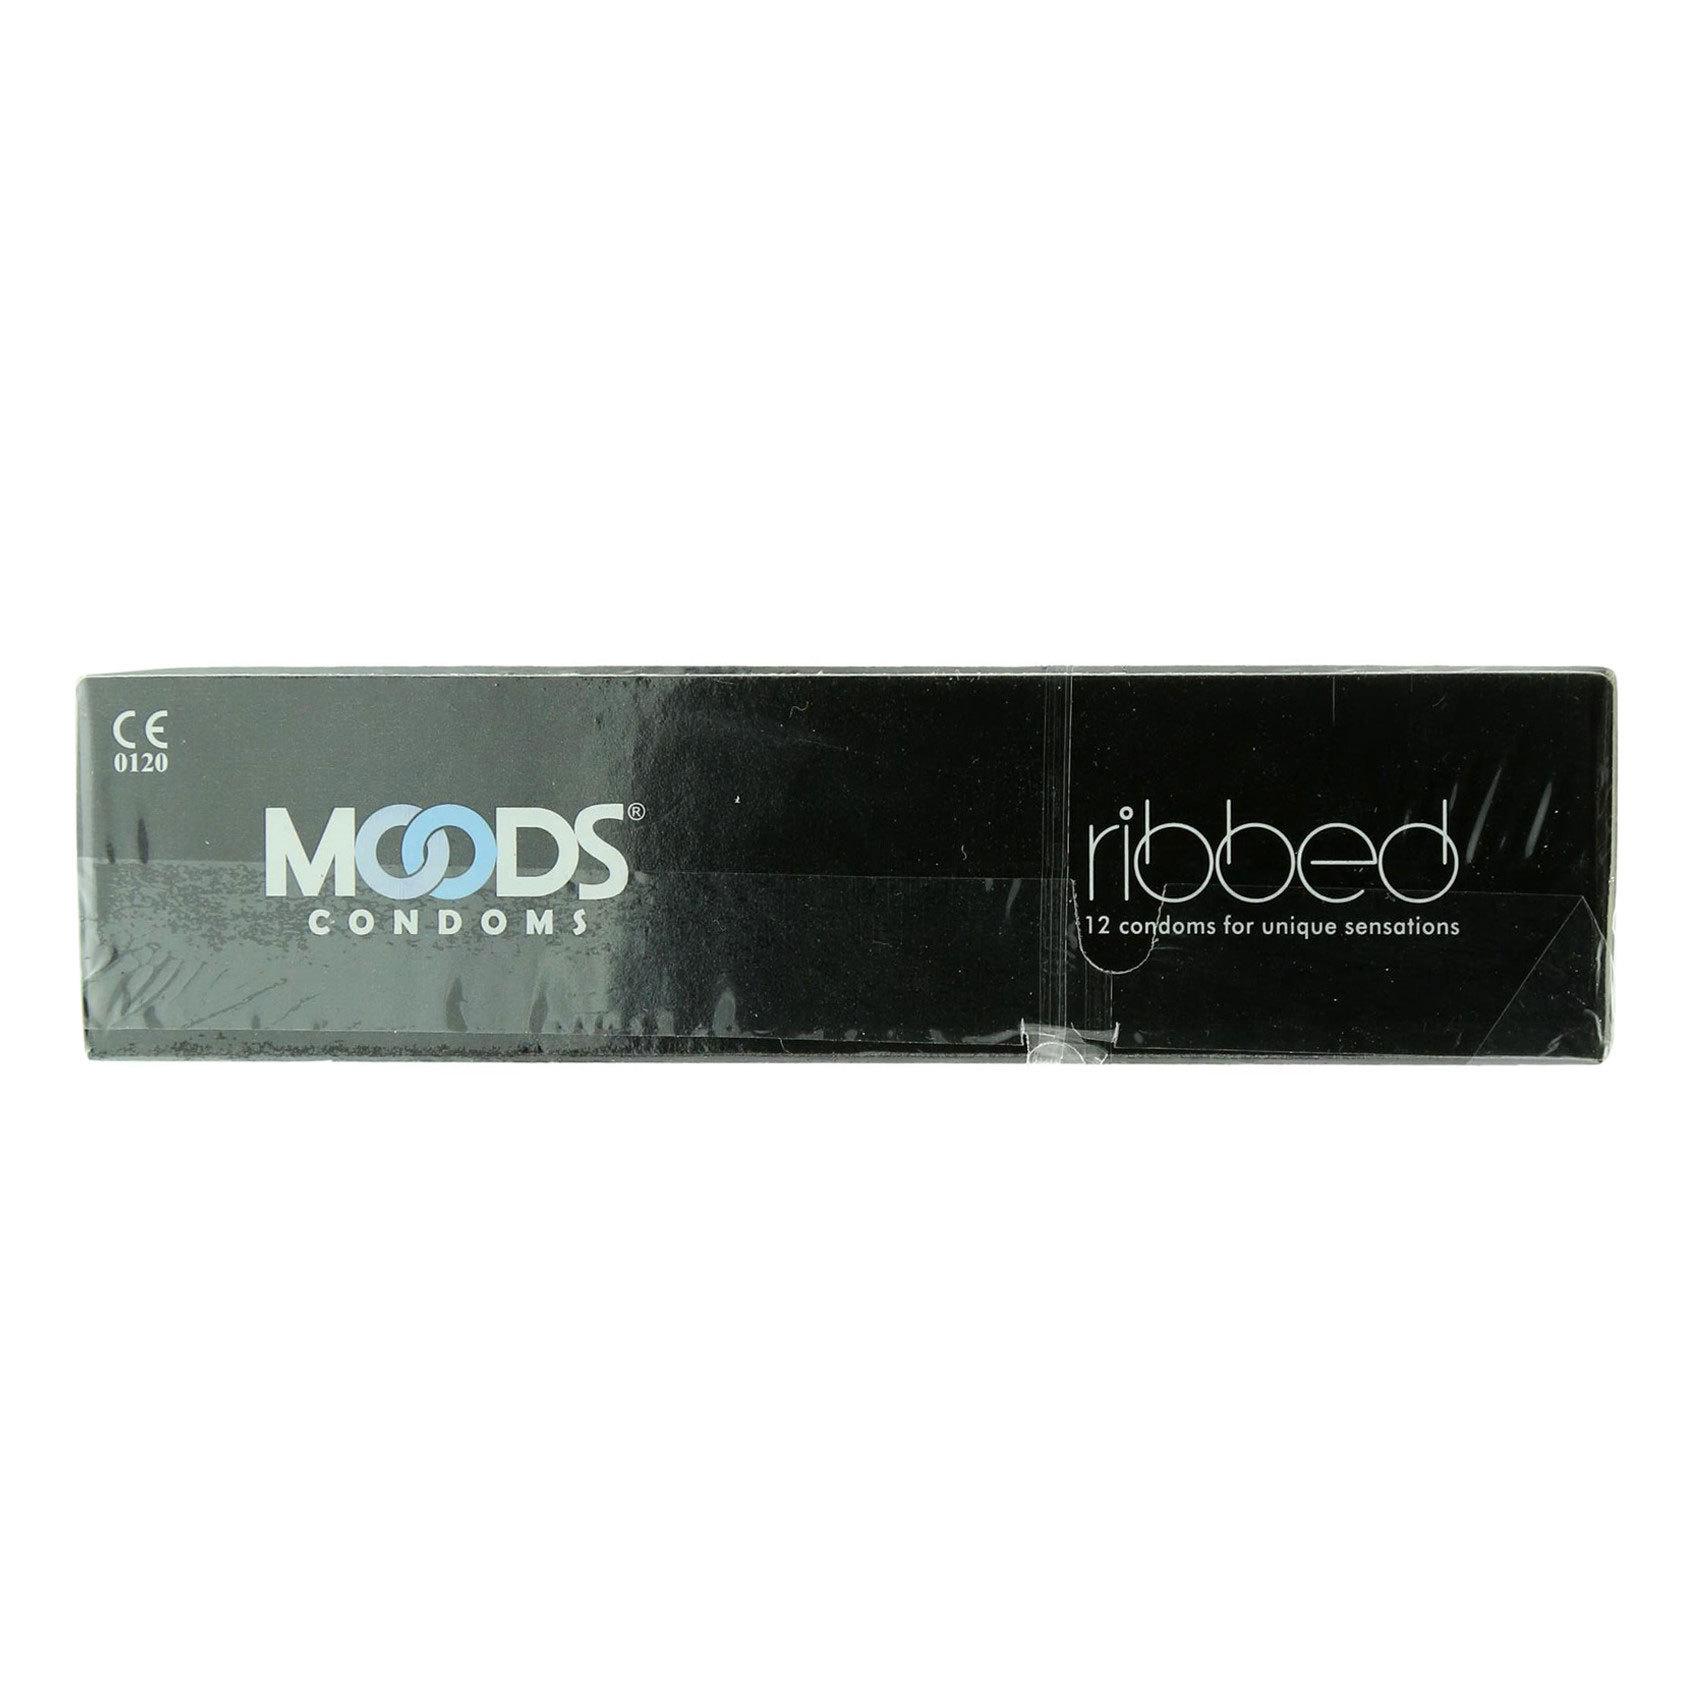 MOODS CONDOMS RIBBED 12S